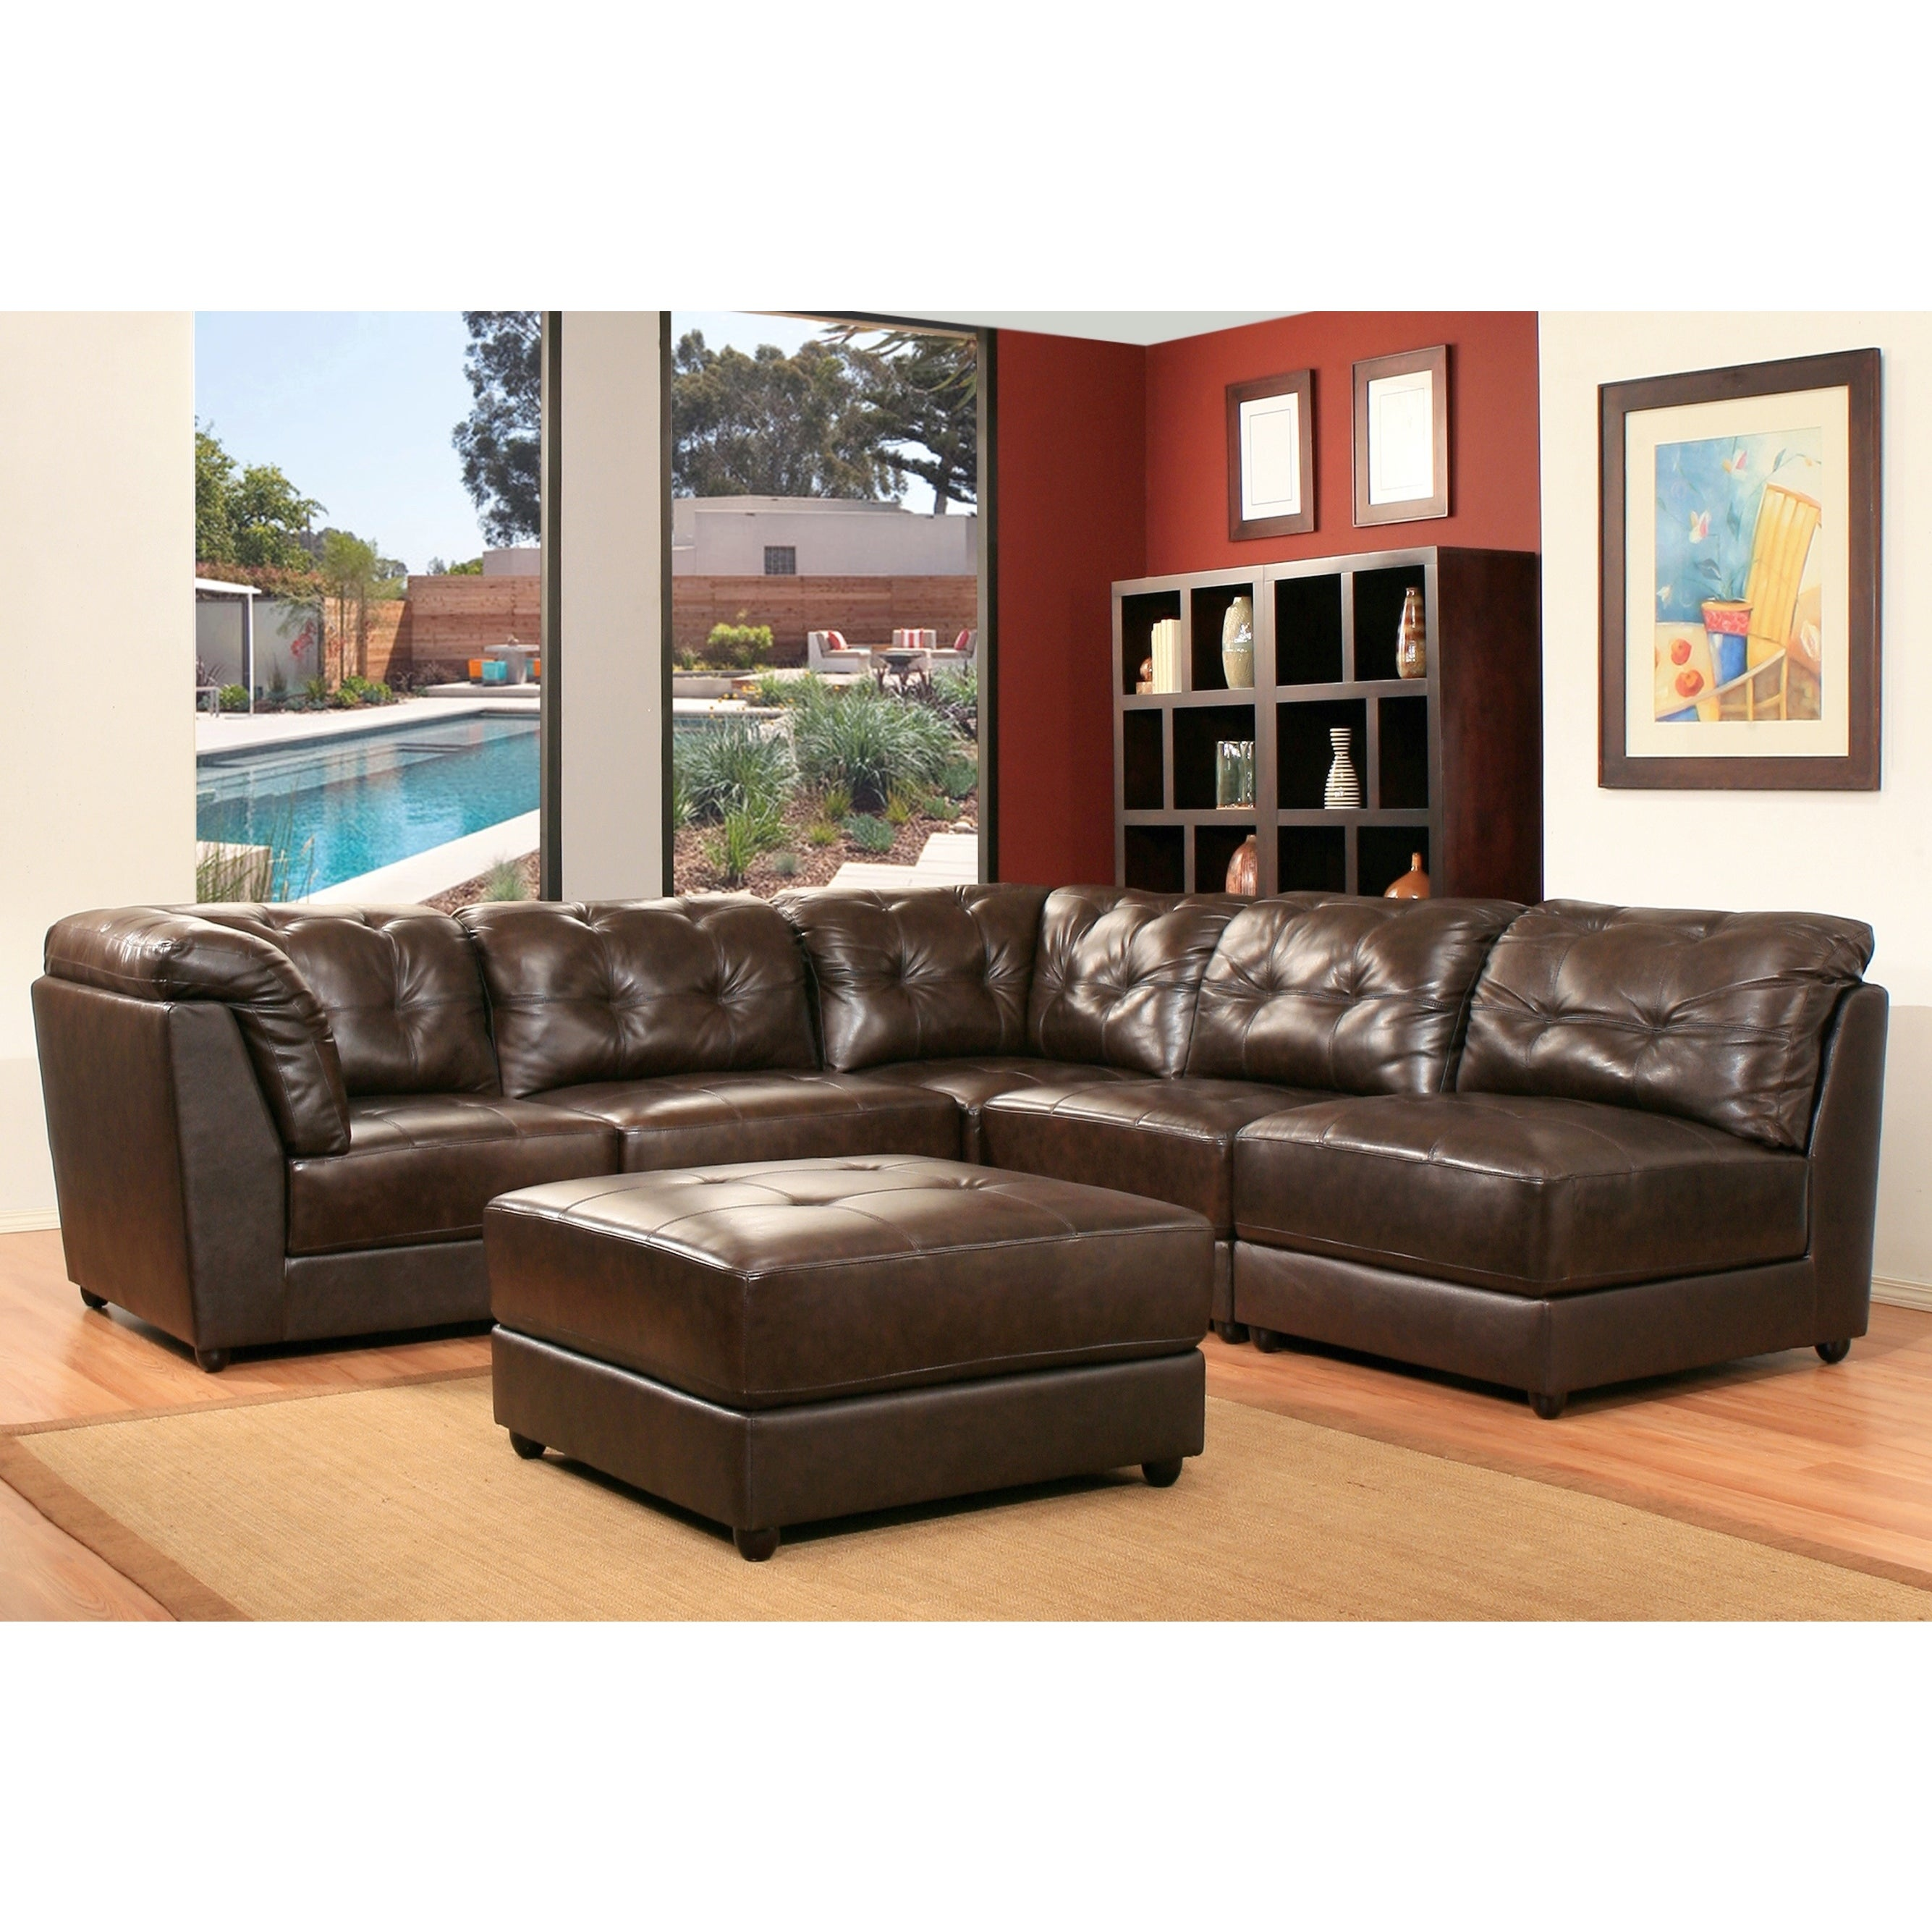 Abbyson Montreal 6 Piece Top Grain Dark Brown Leather Modular Sectional